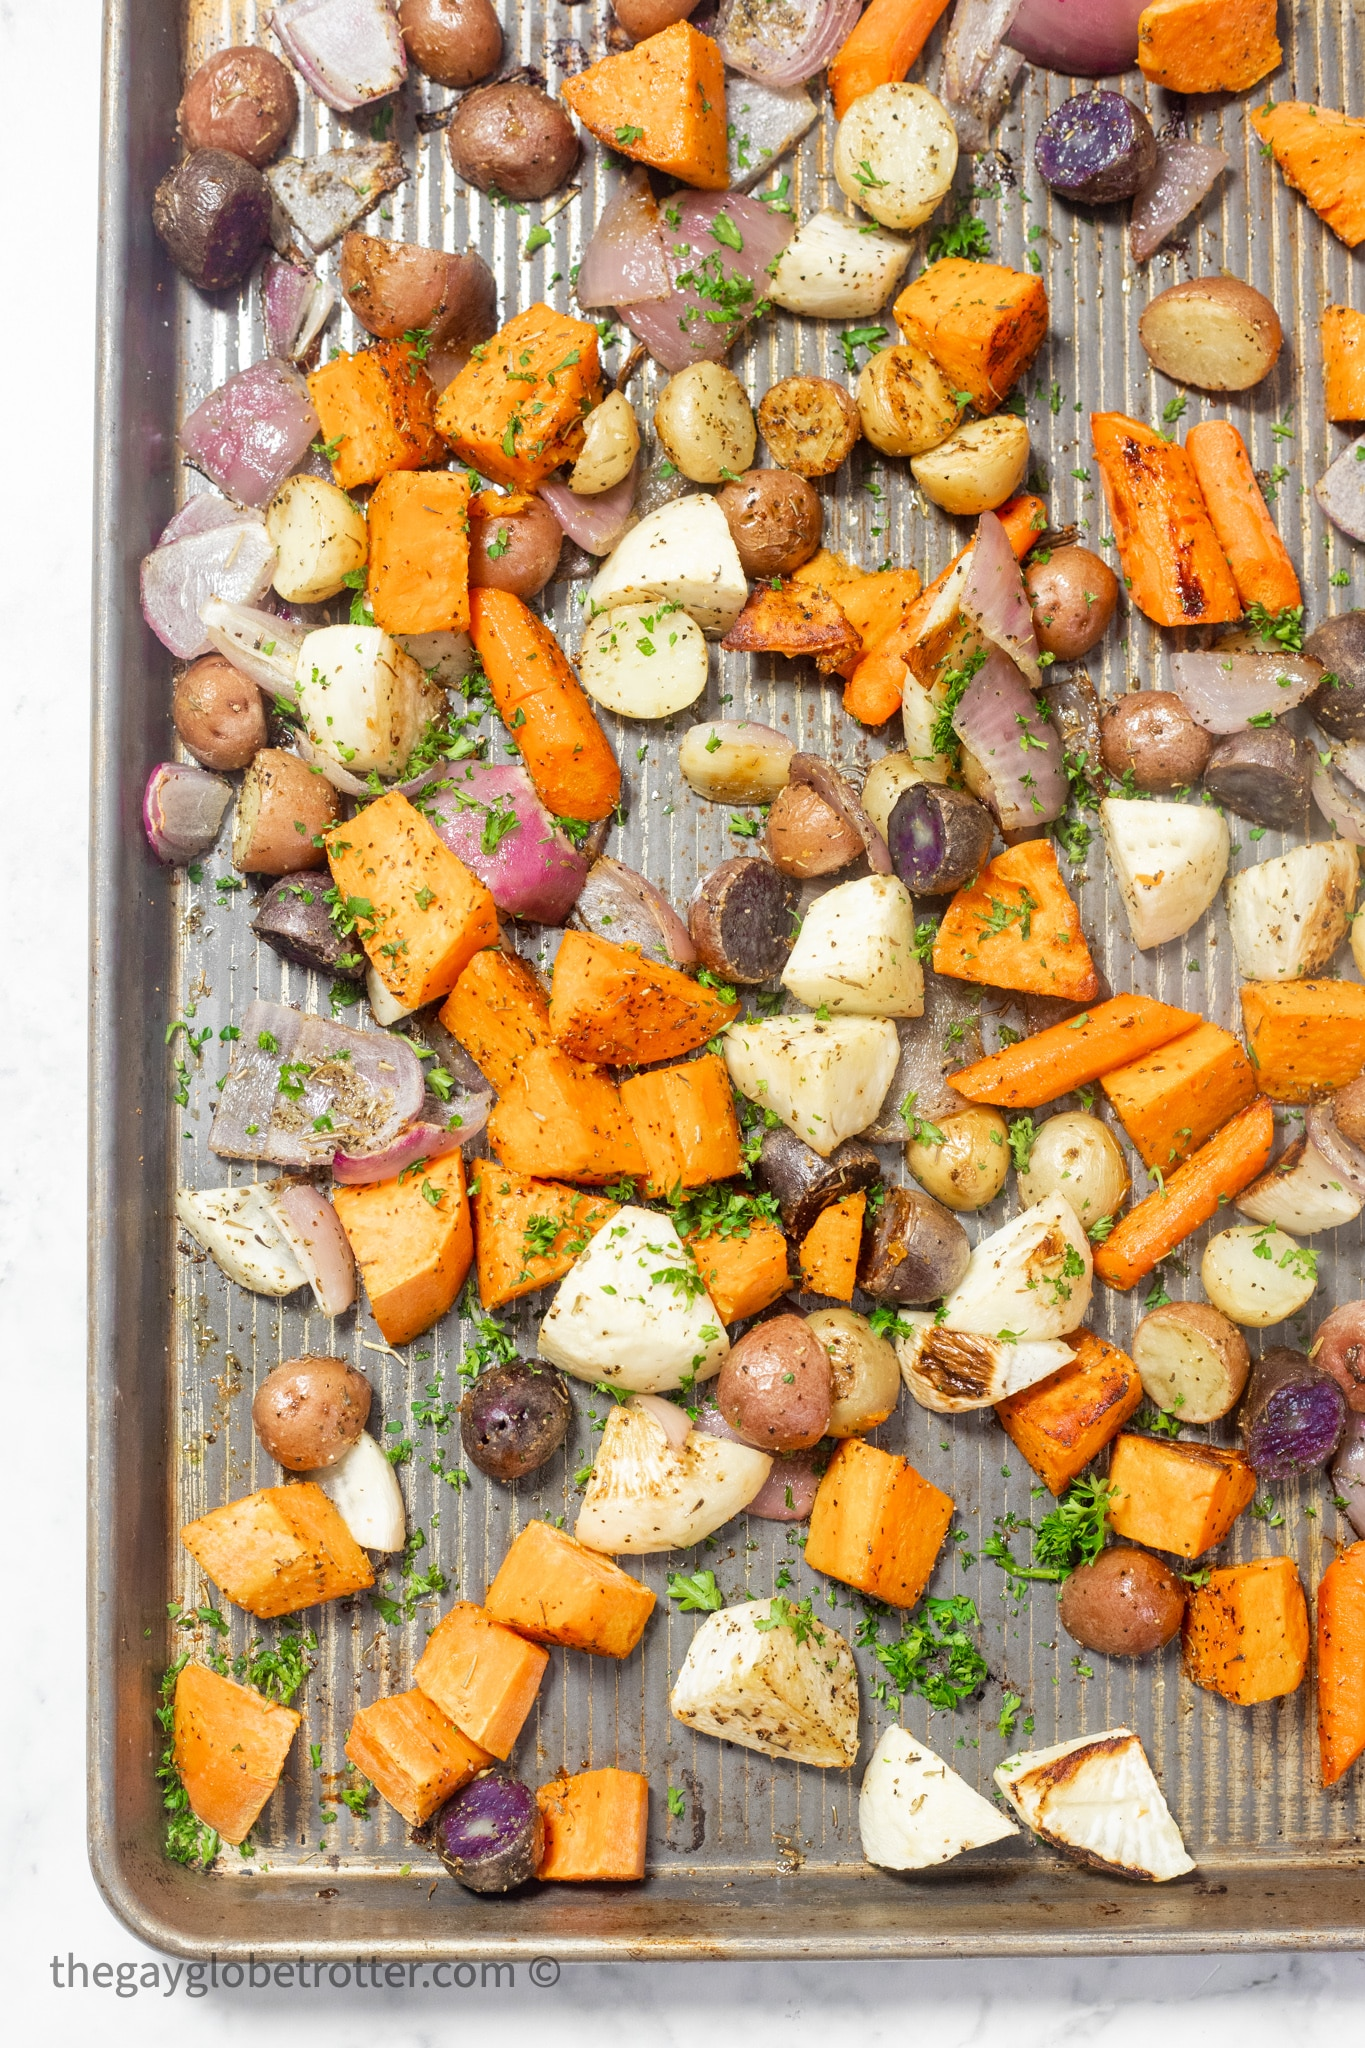 Roasted root vegetables topped with parsley.